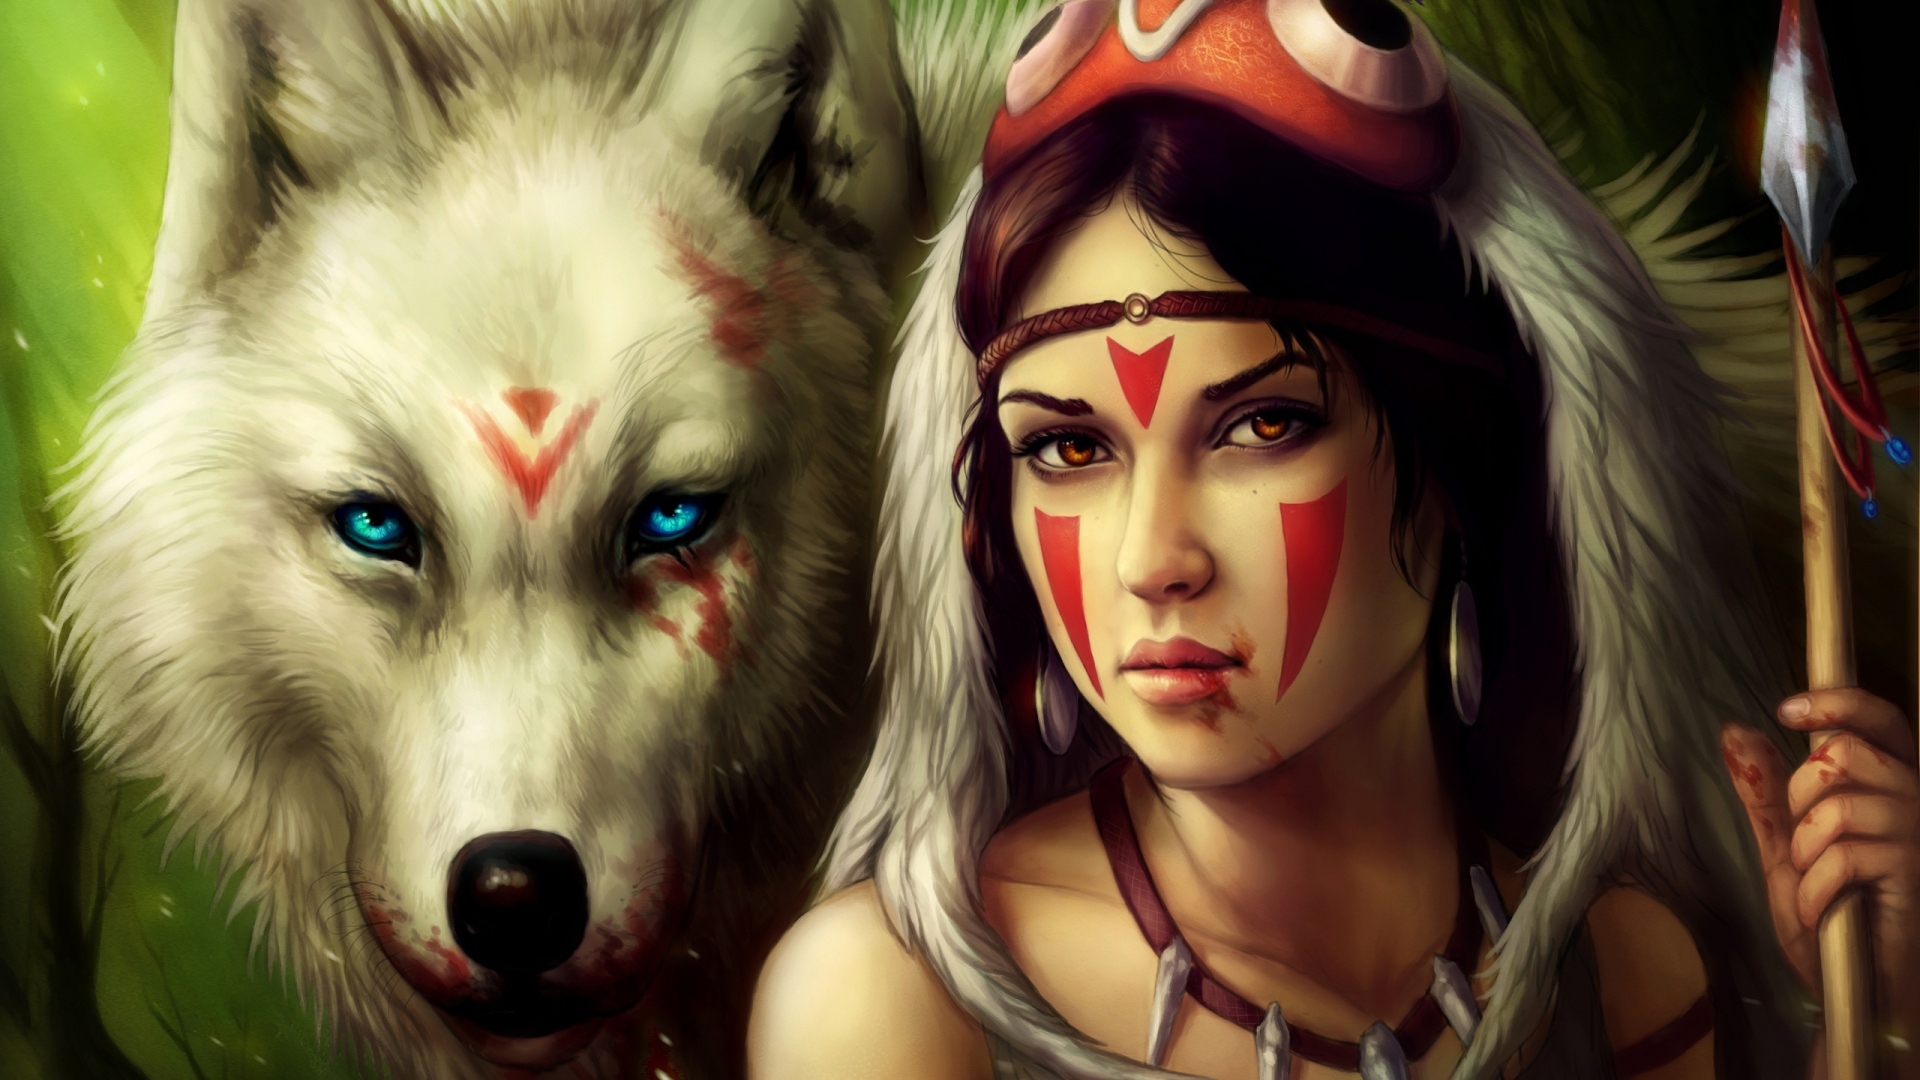 girl-spear-warrior-wolf-1920x1080